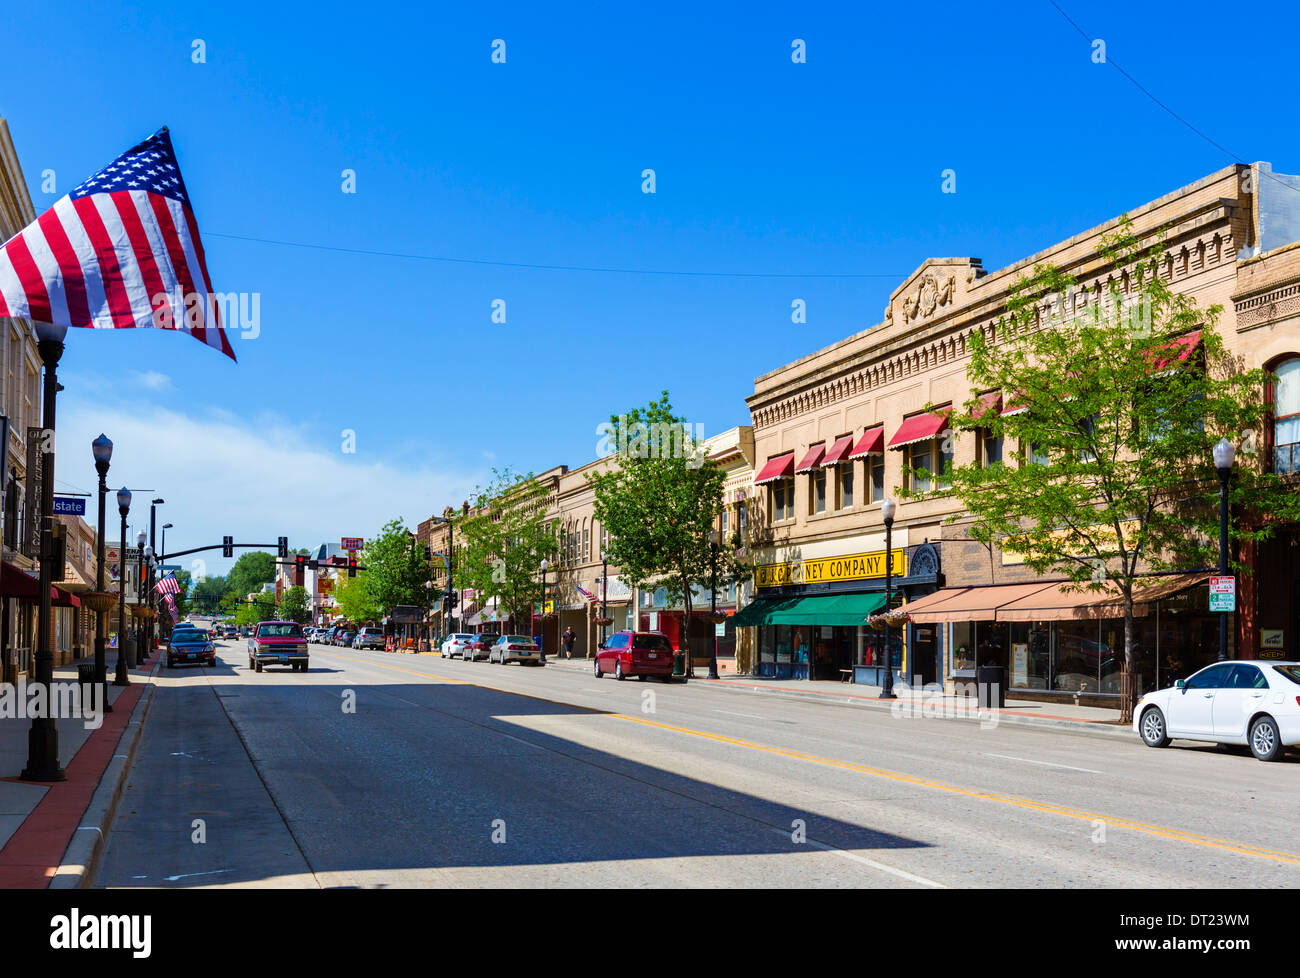 Downtown Laramie Restaurants